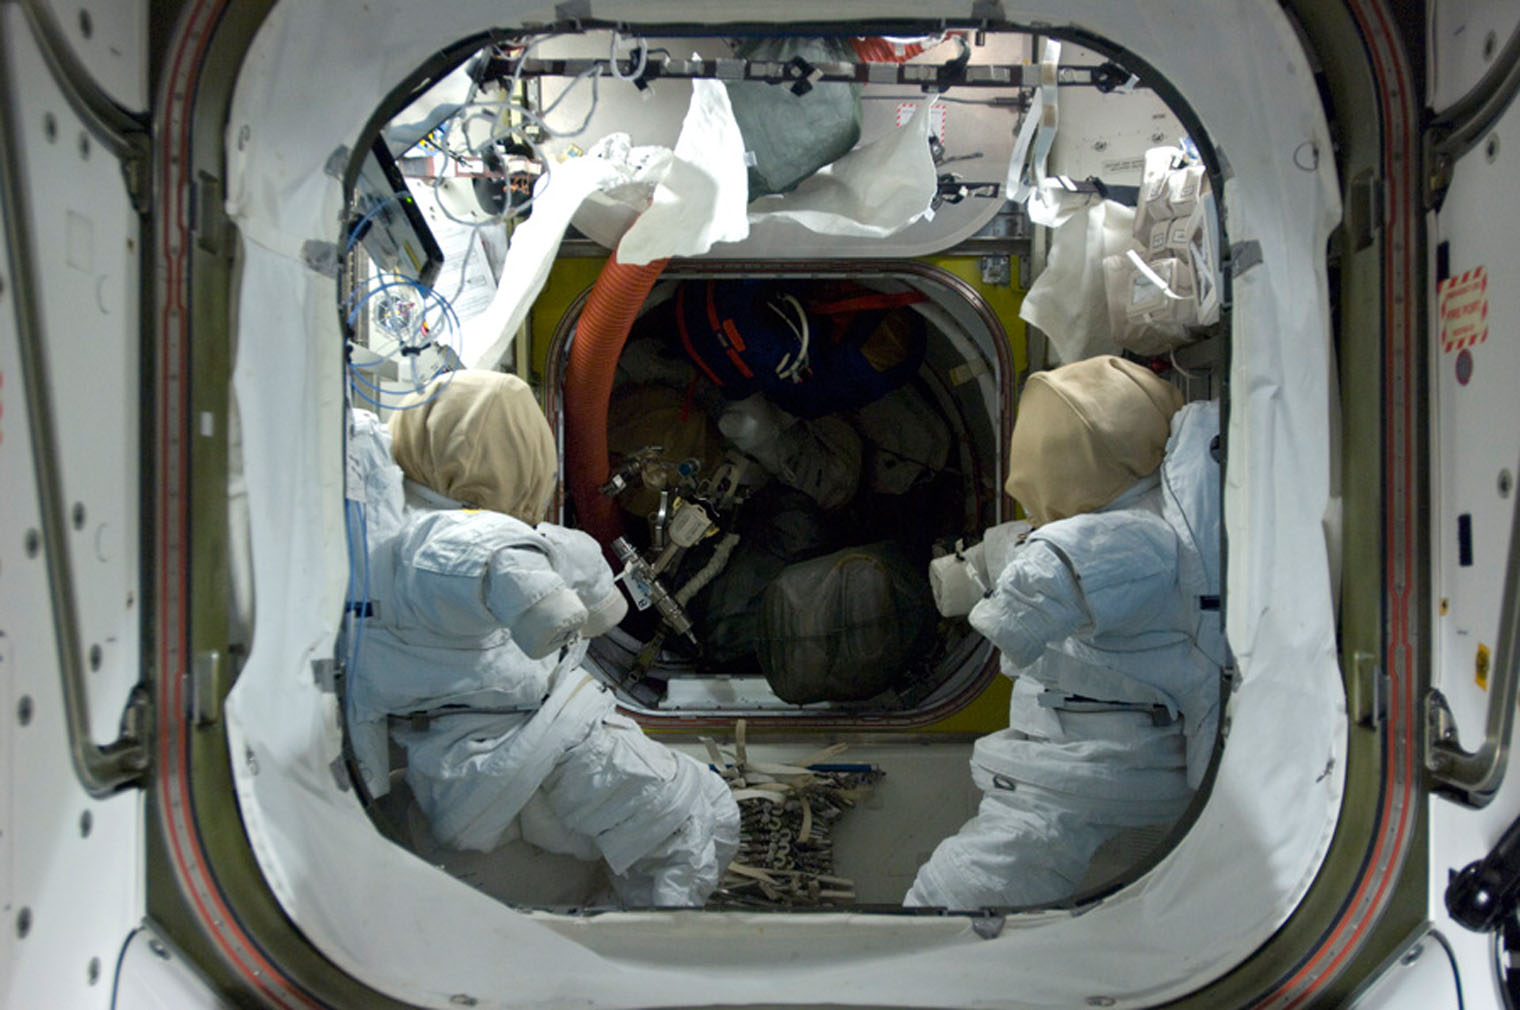 Two spacesuits